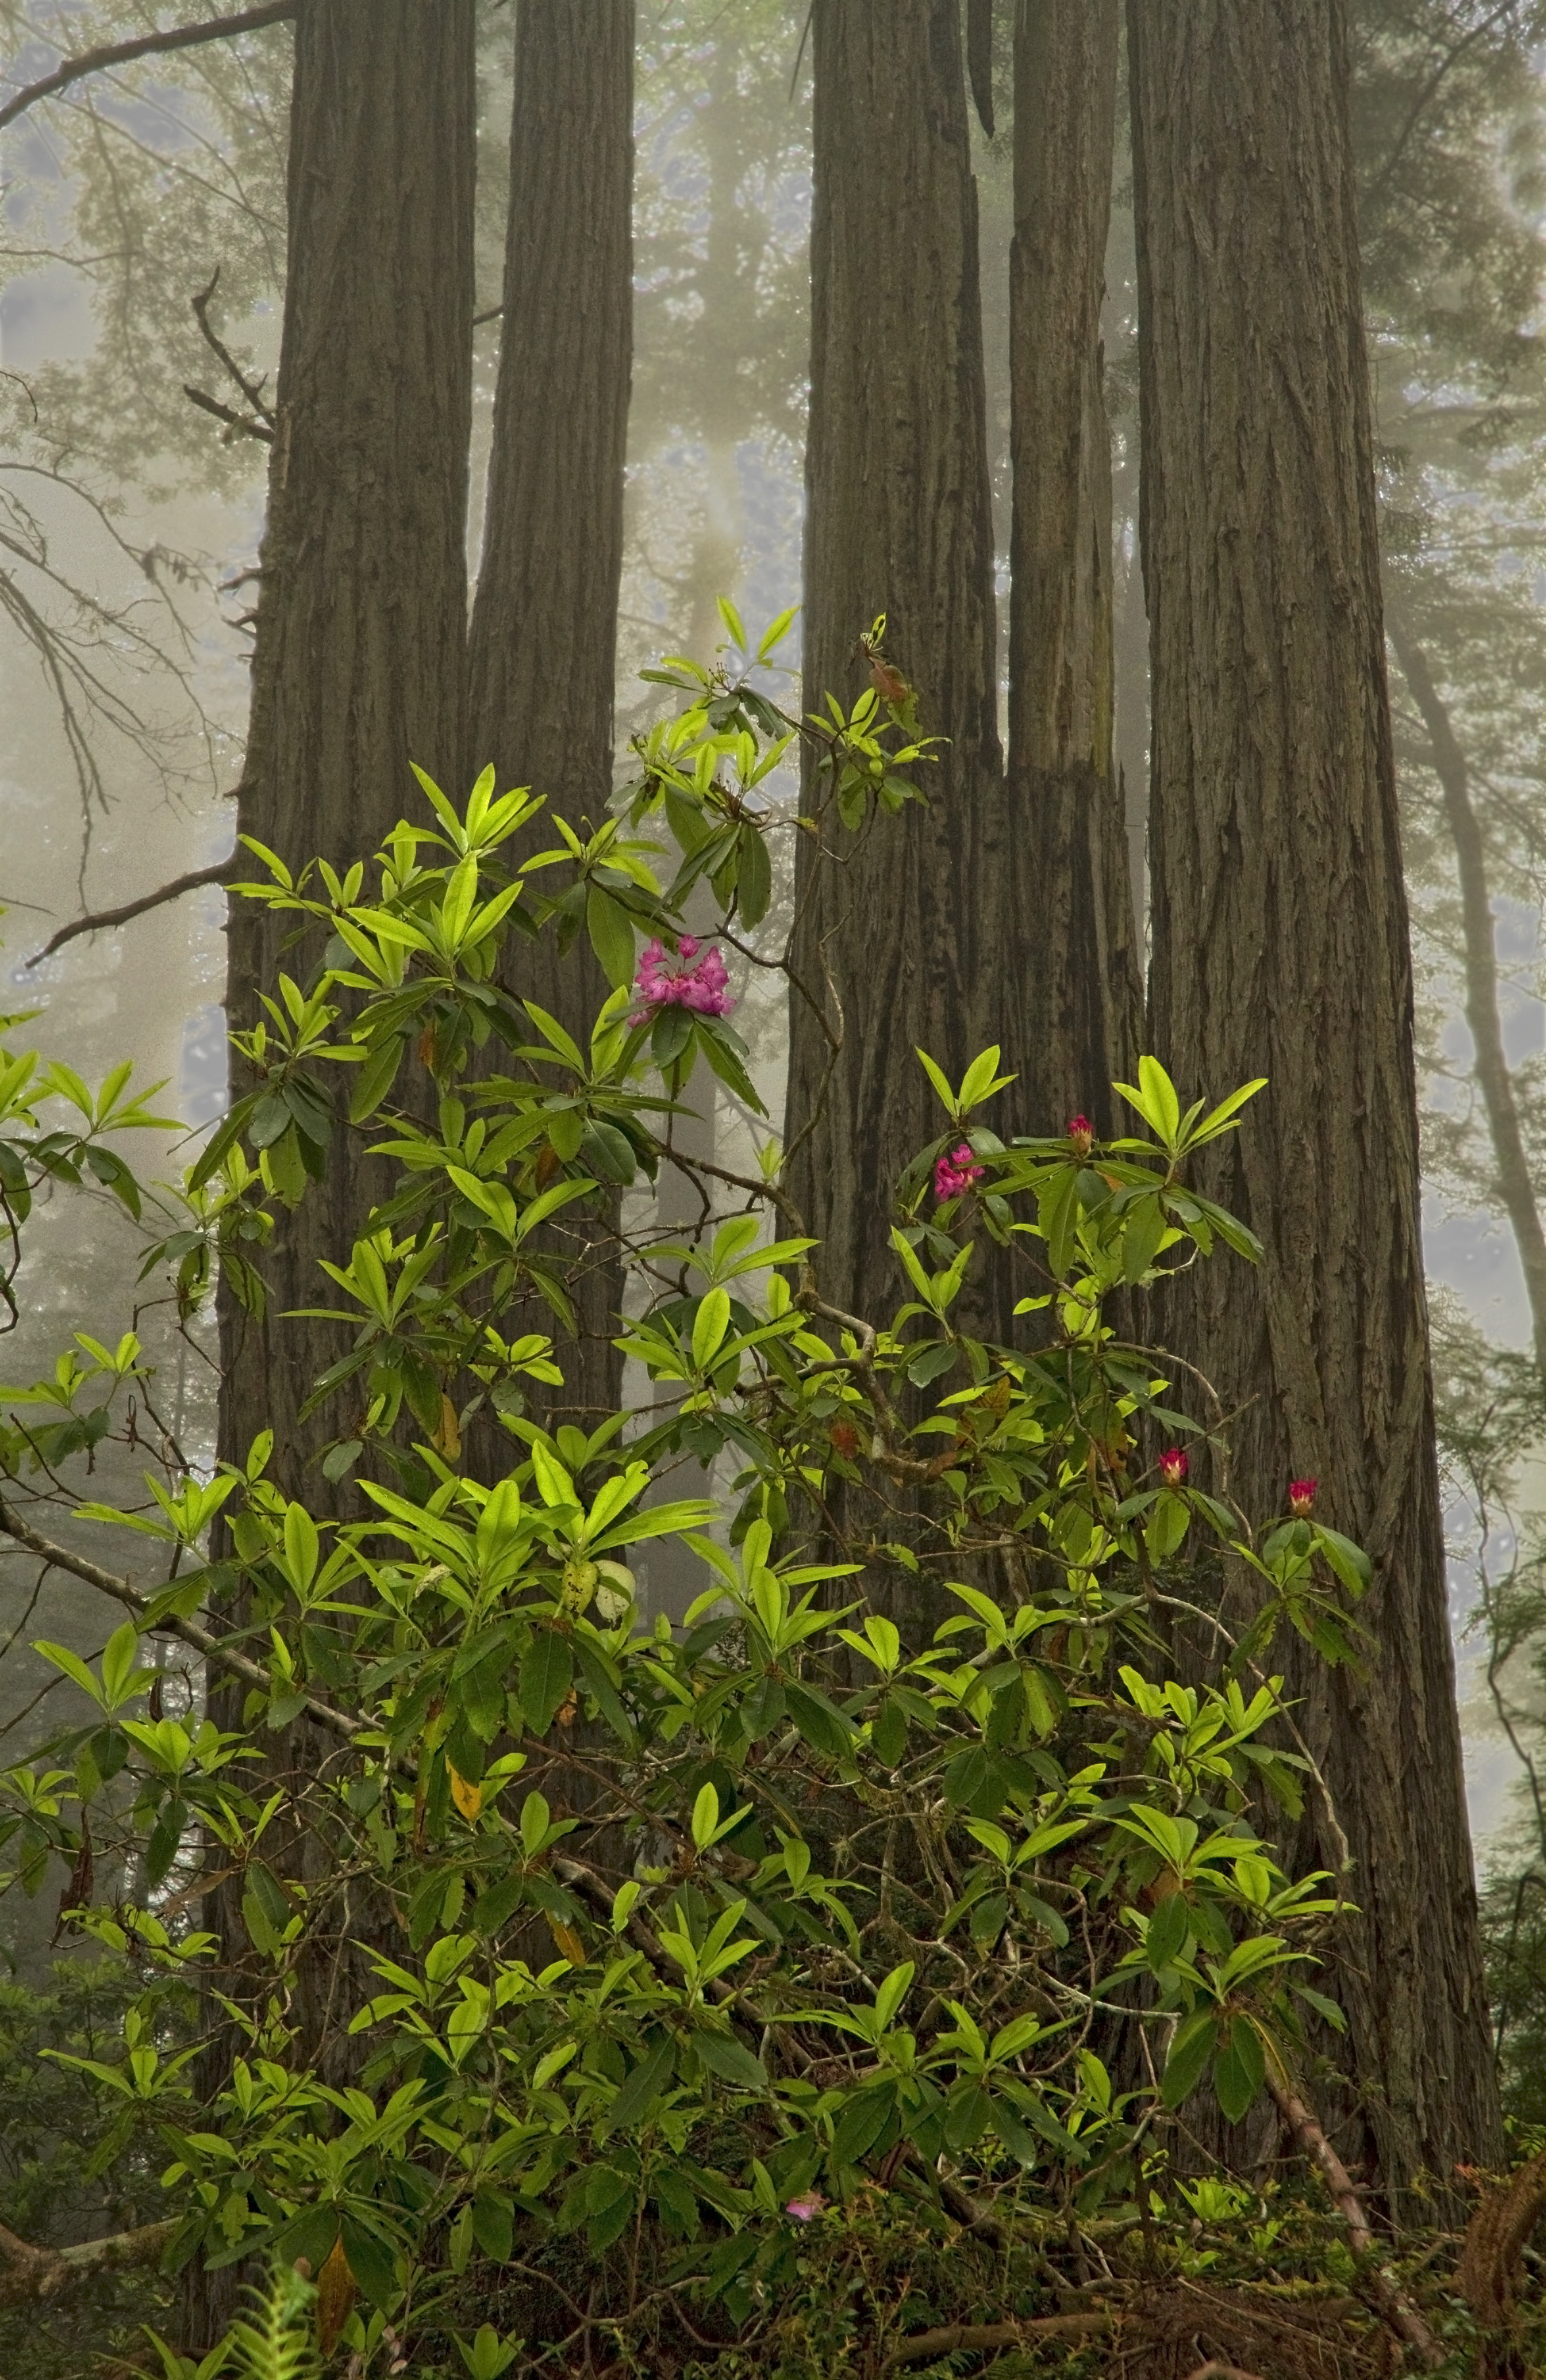 Rhododendron_MG_1986